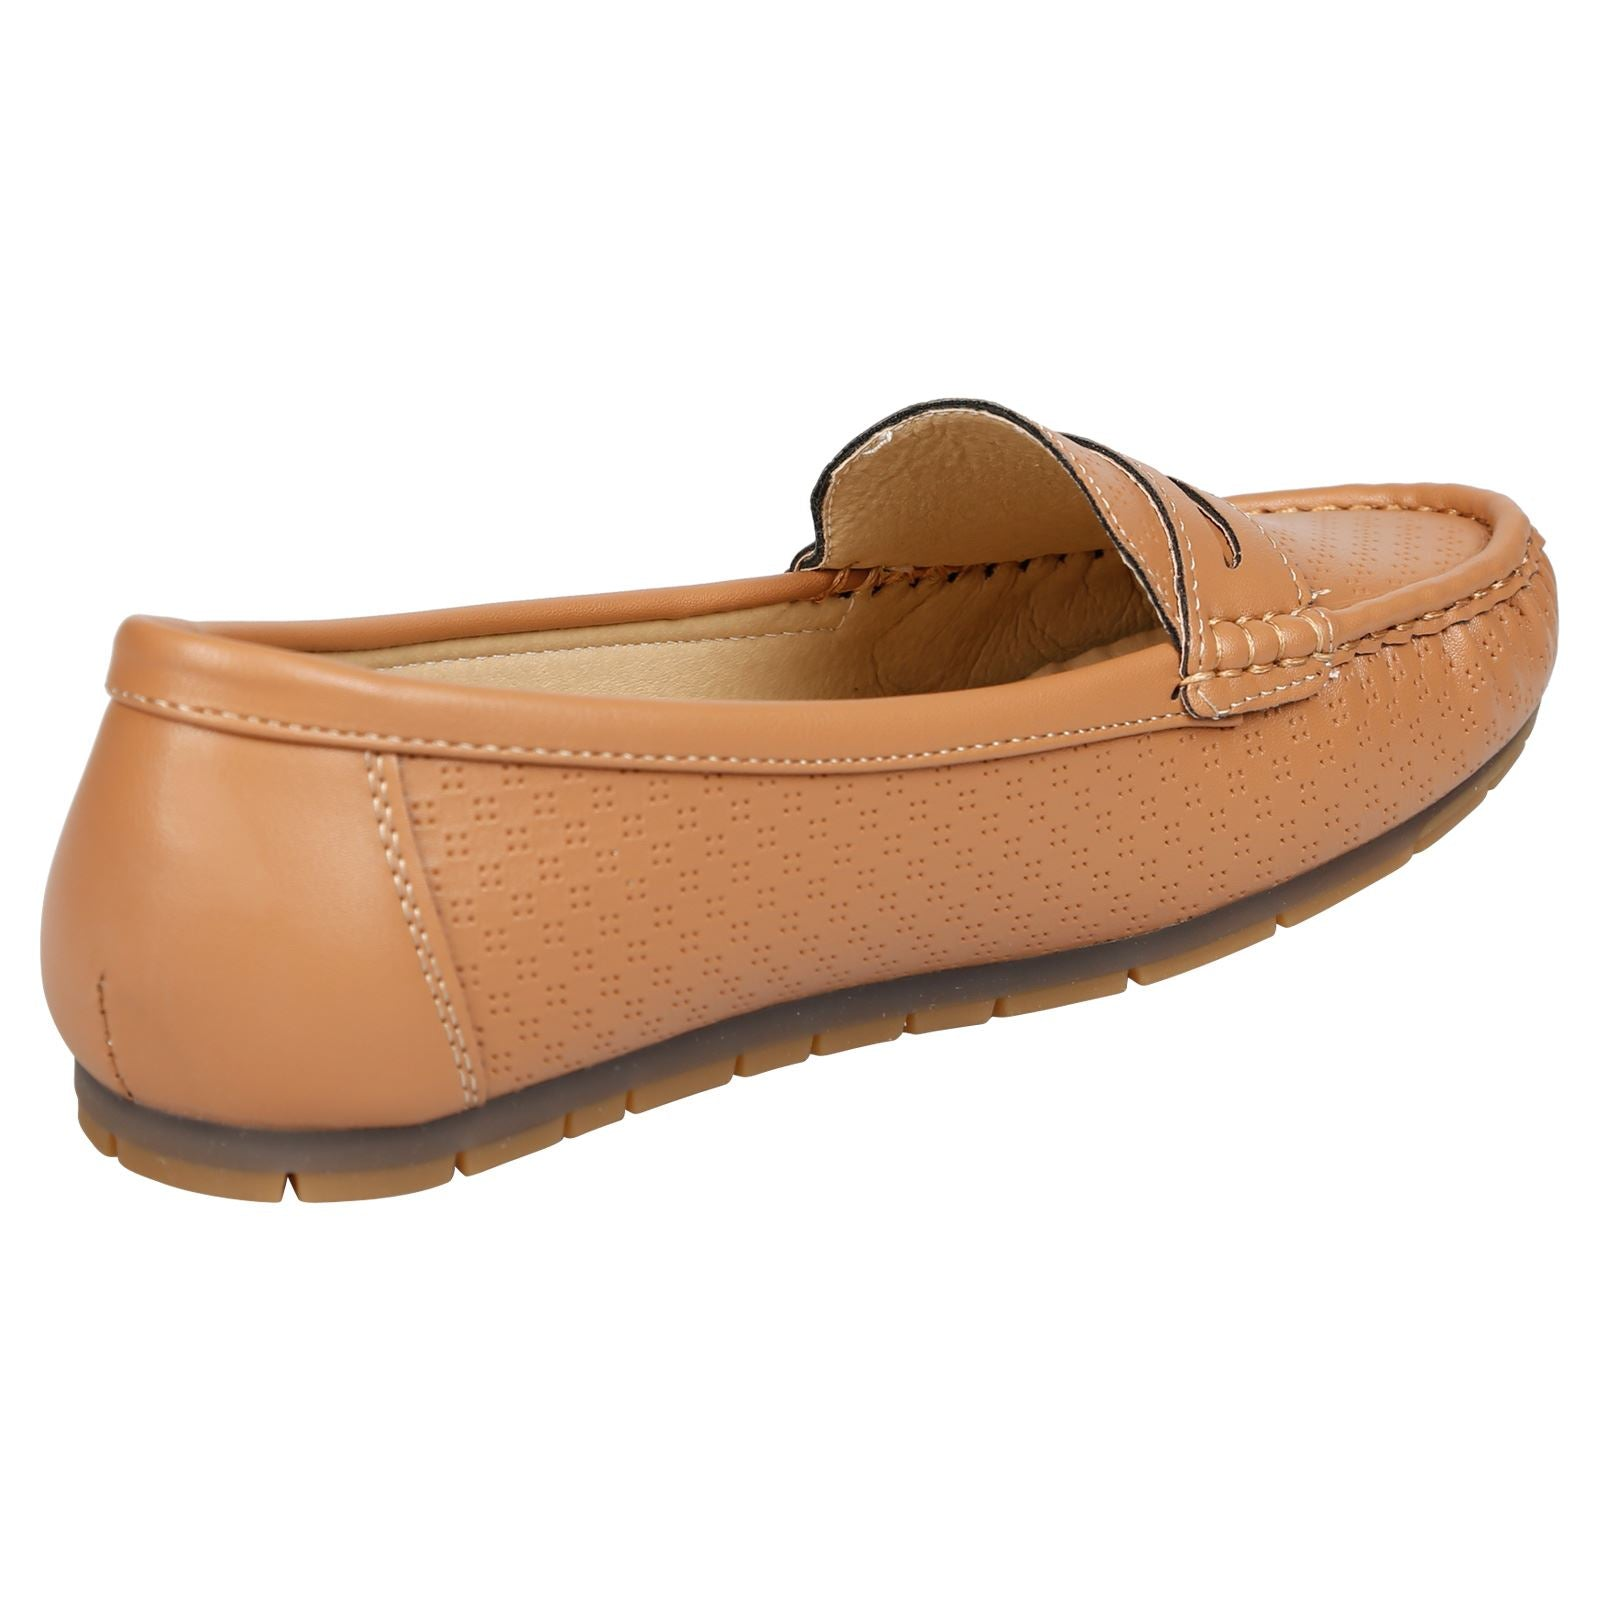 Celinda Textured Mocassins in Tan Faux Leather